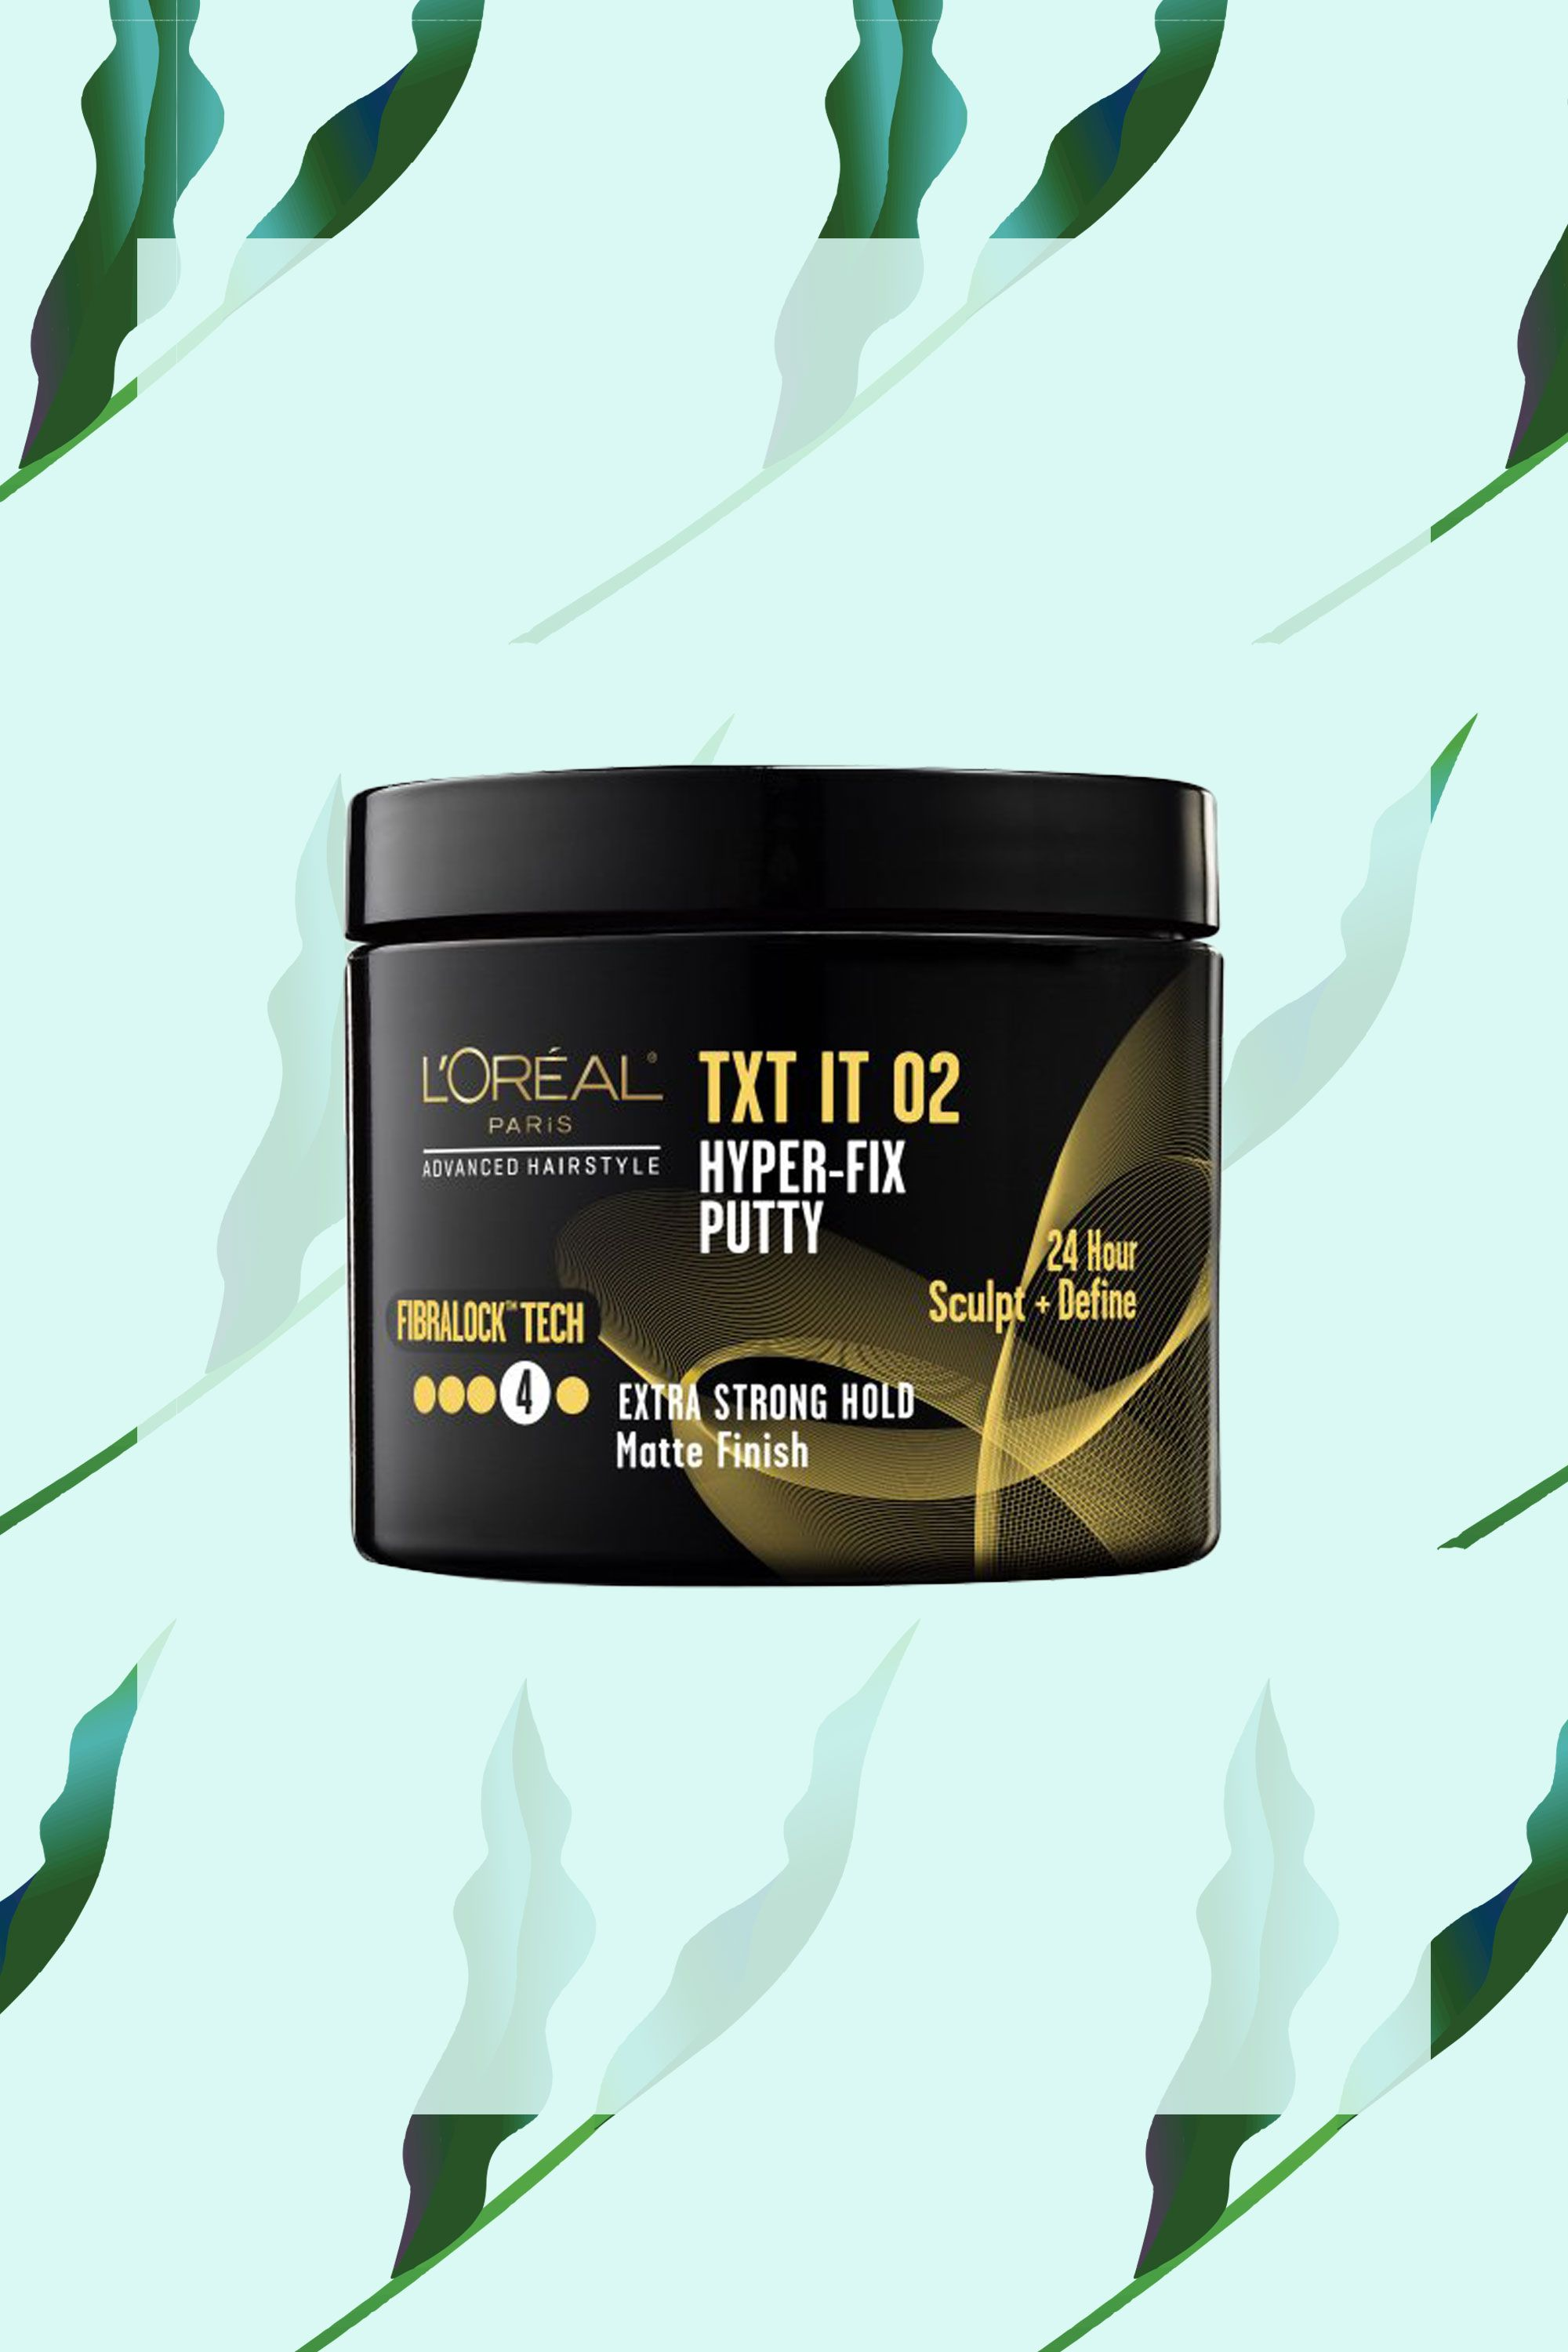 """<p>One of the easiest ways to look polished in a hurry: smooth flyaways. A pomade like <a href=""""http://bit.ly/2cf3lu8"""" target=""""_blank"""">L'Oréal Paris Advanced Hairstyle Txt It Hyper Fix Putty</a>,$5, will help keep them in check. """"Warm up a small amount in your hands then smooth it over any rogue hairs.Pomade provides a little more hold than hairspray,""""<span class=""""redactor-invisible-space"""" data-verified=""""redactor"""" data-redactor-tag=""""span"""" data-redactor-class=""""redactor-invisible-space""""></span>saysThompson.<span class=""""redactor-invisible-space"""" data-verified=""""redactor"""" data-redactor-tag=""""span"""" data-redactor-class=""""redactor-invisible-space""""></span></p>"""